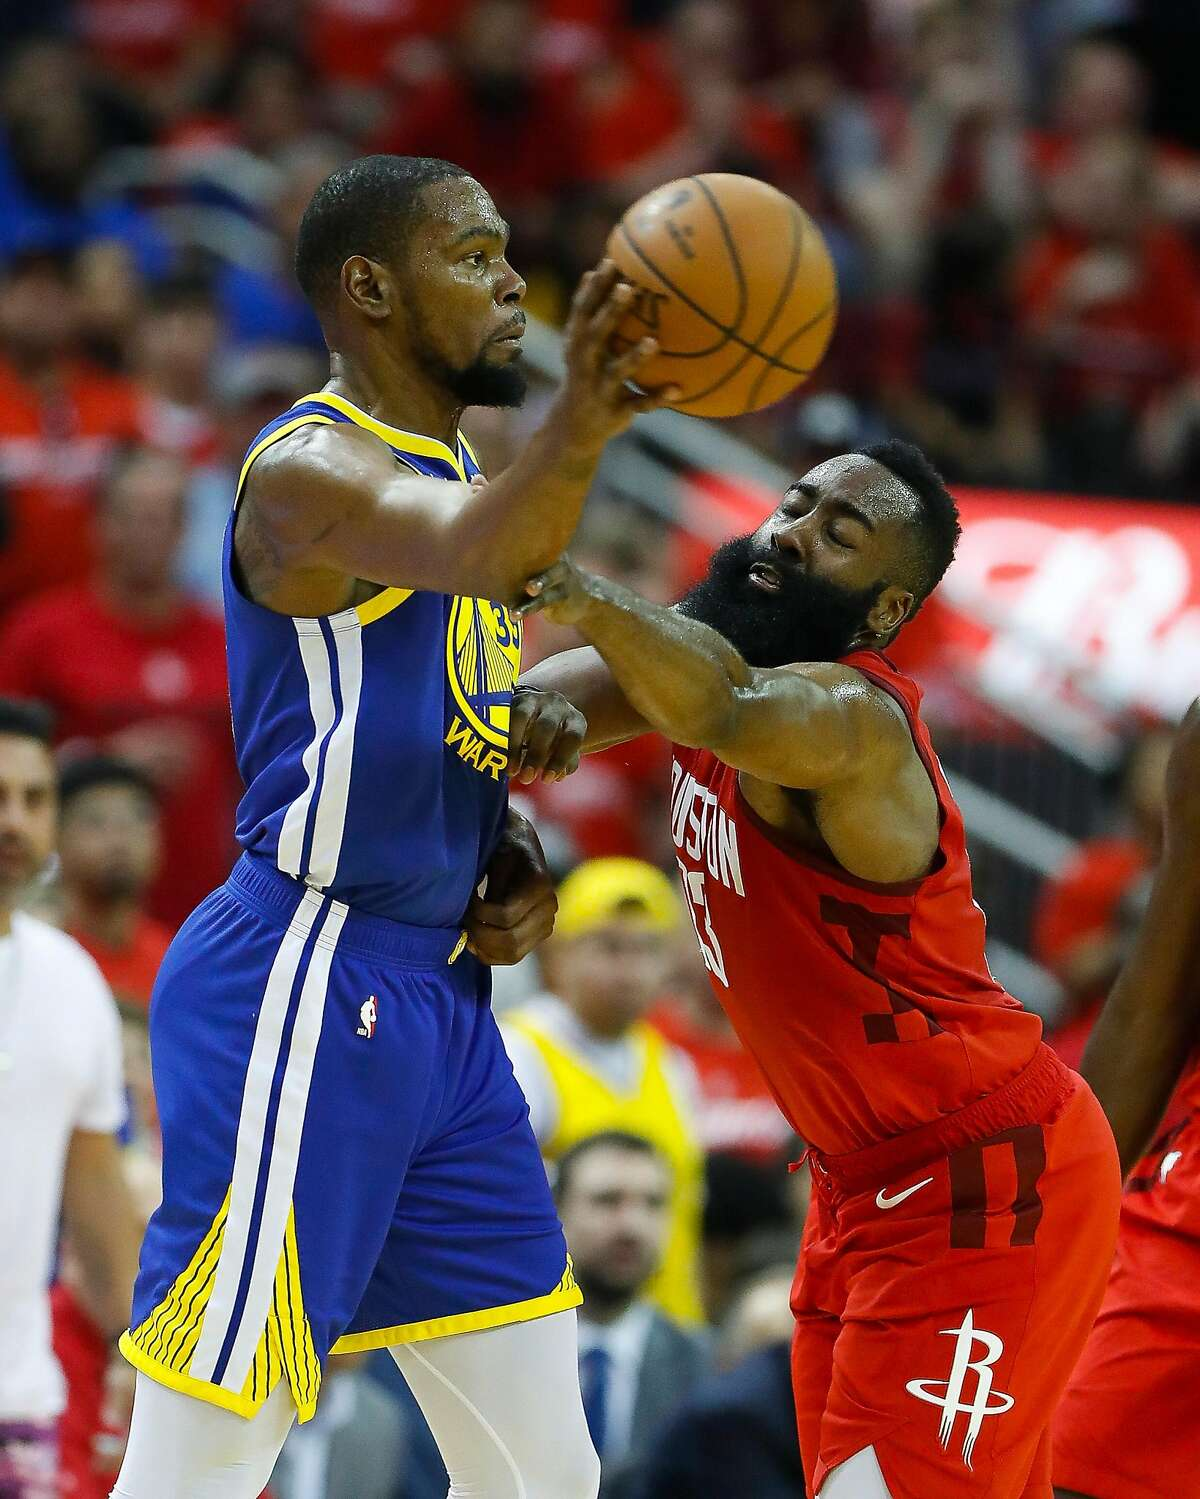 Houston Rockets guard James Harden (13) defends Golden State Warriors forward Kevin Durant (35) during the second quarter of Game 3 of a NBA Western Conference semifinal playoff game at Toyota Center, in Houston , Saturday, May 4, 2019.